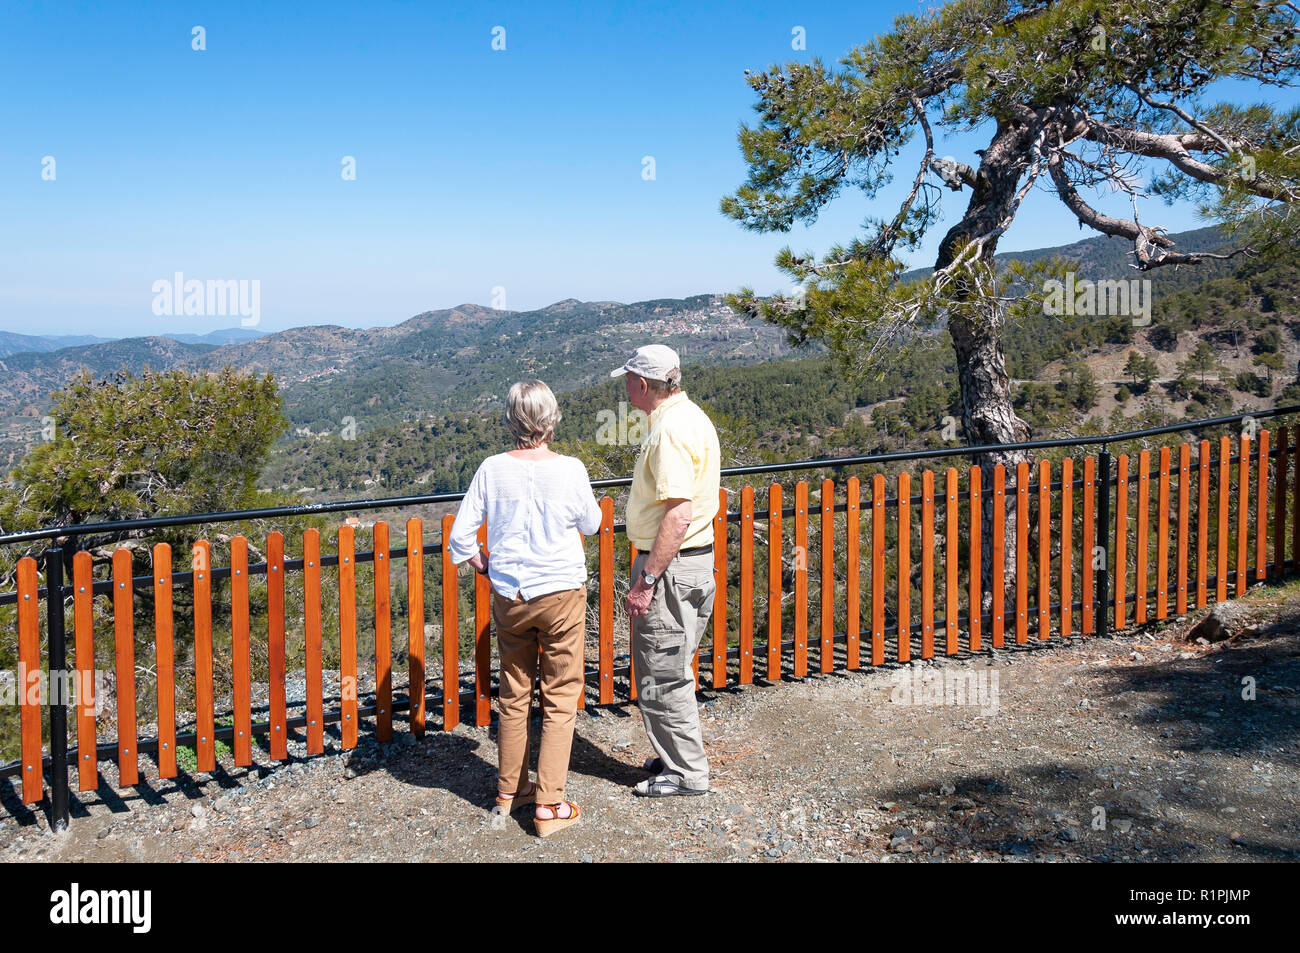 Older couple at Kokkini lookout, Troodos Mountains, Limassol District, Republic of Cyprus - Stock Image